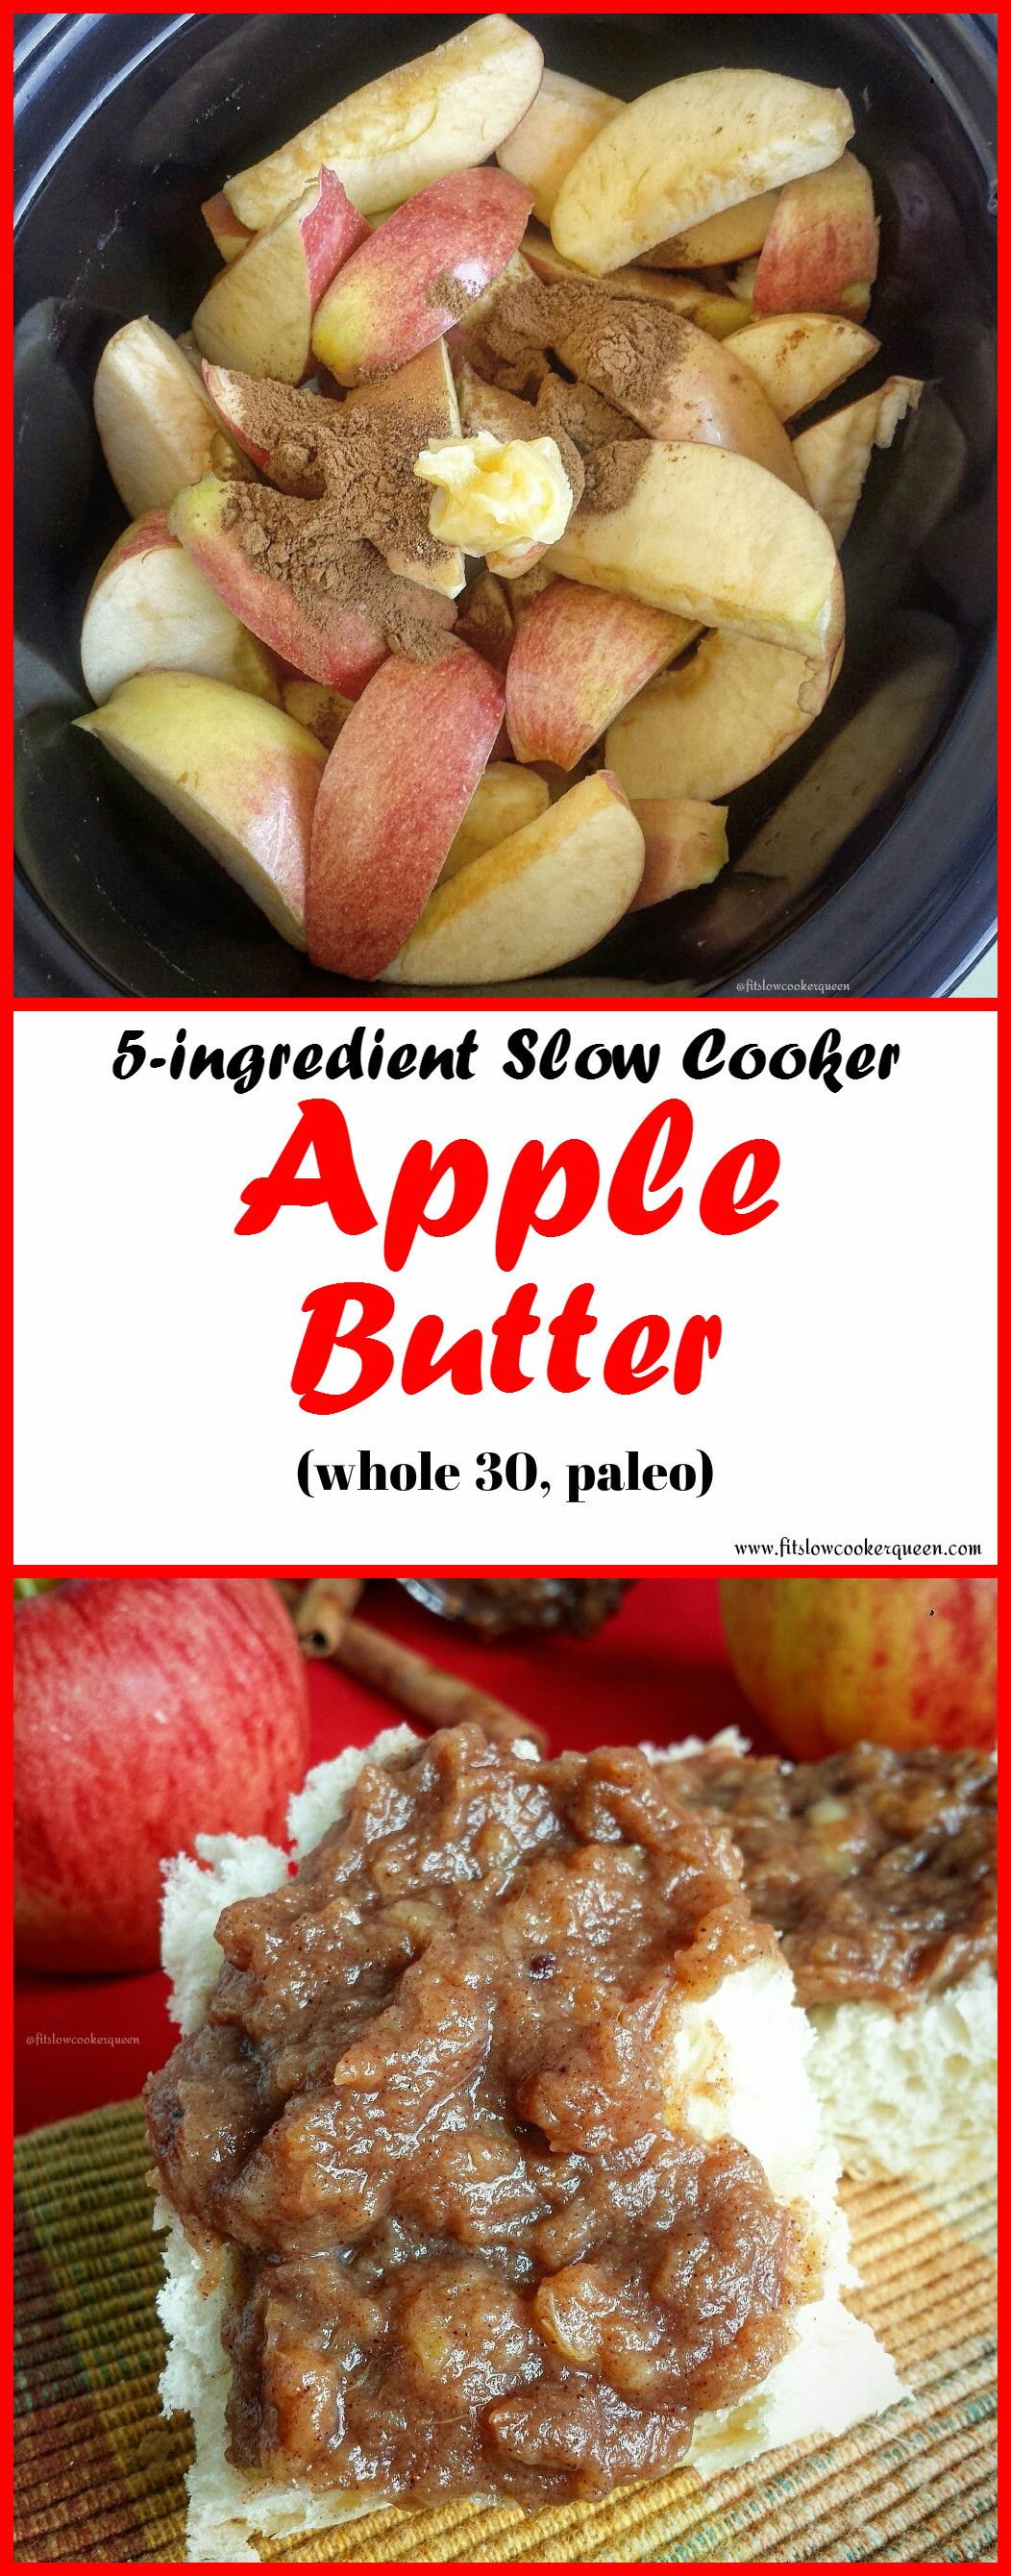 Slow Cooker Apple Butter (Paleo,Whole30) #whole30recipes